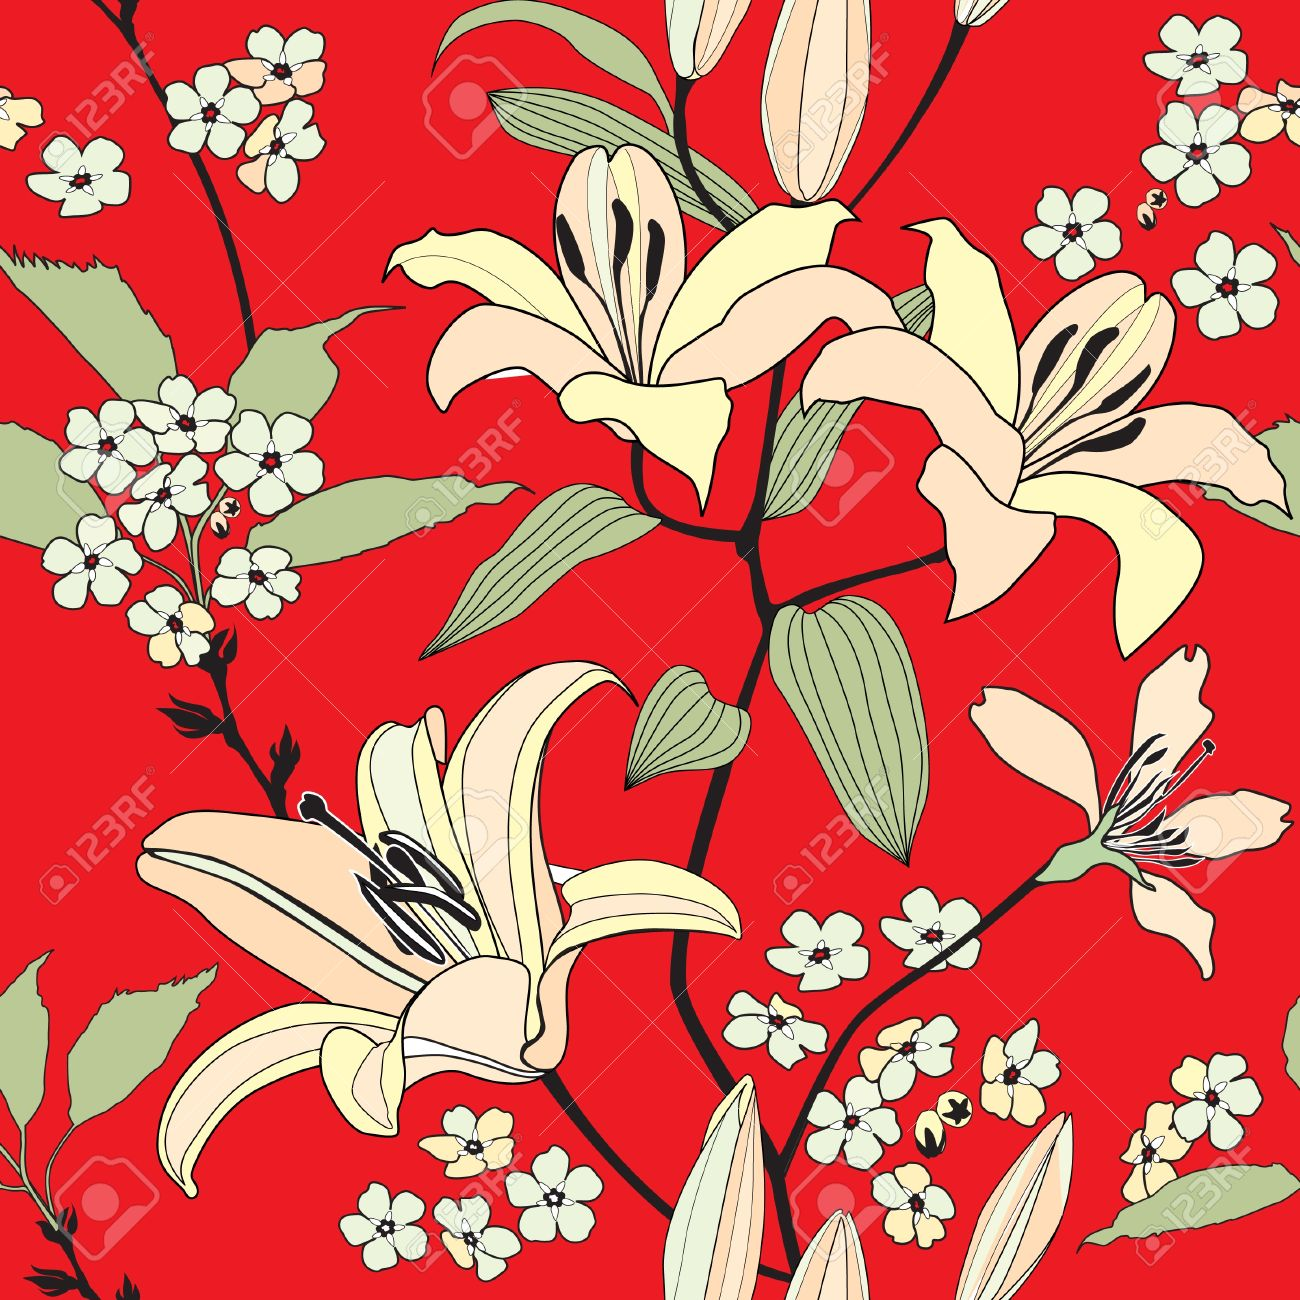 Flower Lily Background Red Floral Wallpaper Flourish Pattern